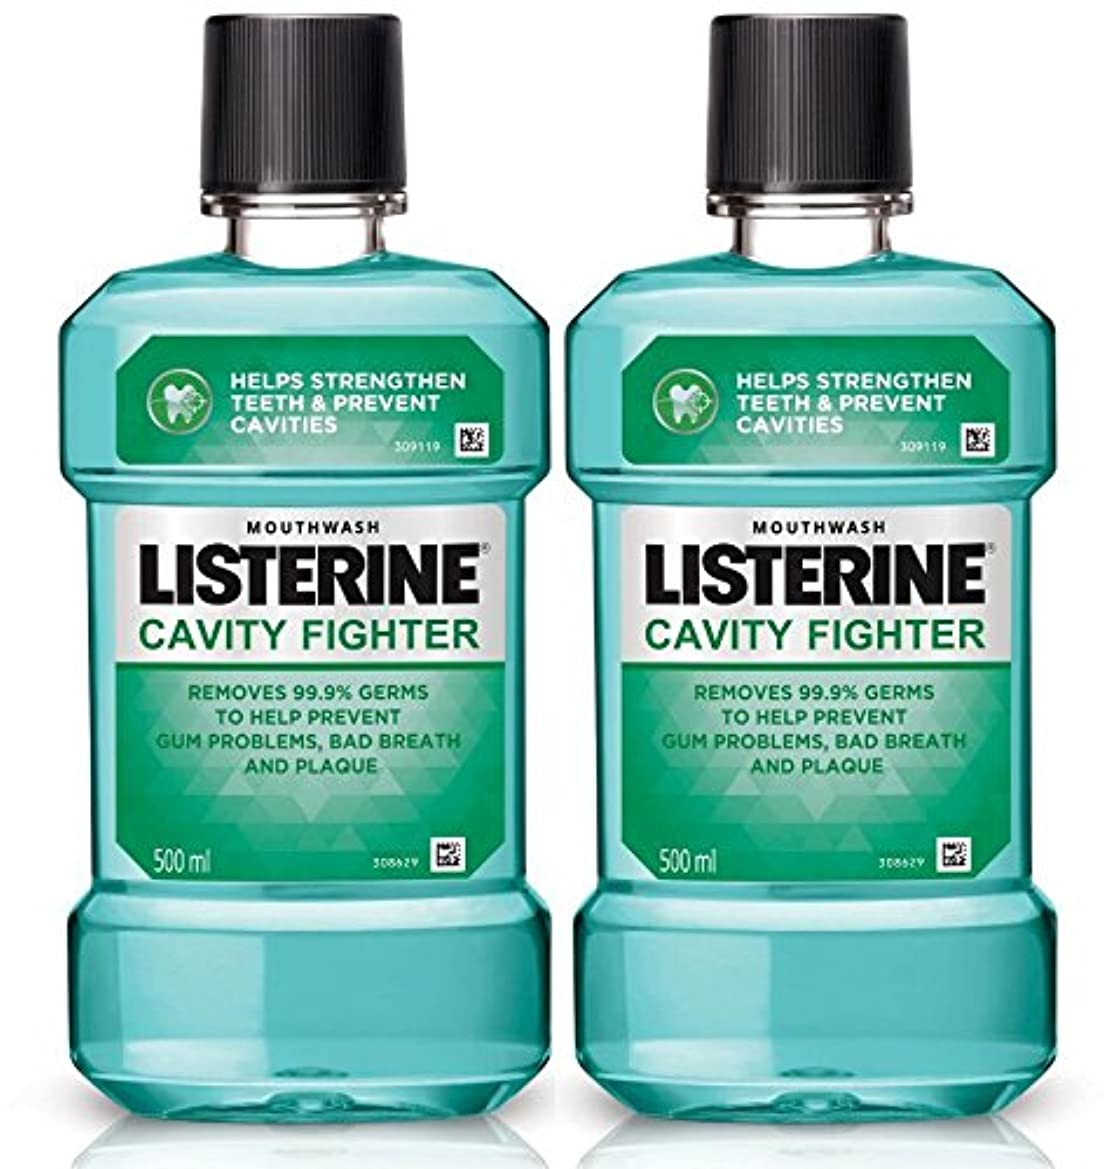 シャットビリー彫刻家Listerine Cavity Fighter Mouthwash 500ml (Pack of 2)